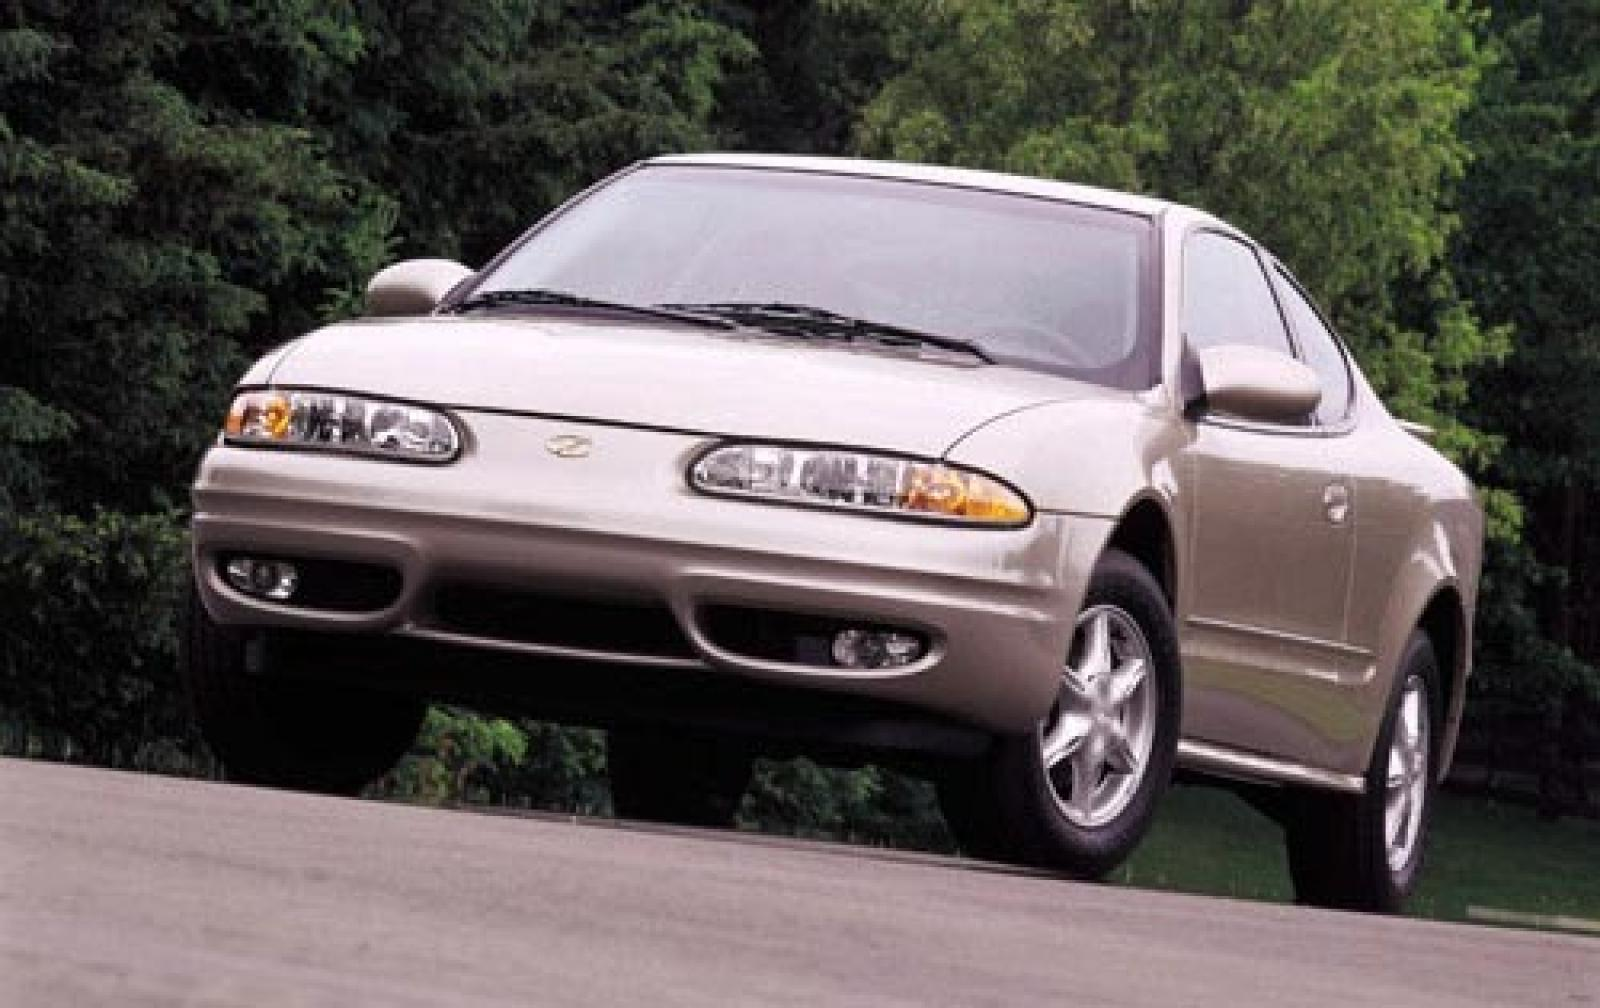 Chevrolet Alero 34 Opinie All About 2001 Oldsmobile 2 4 L Twin Cam Diamond Source Page 11